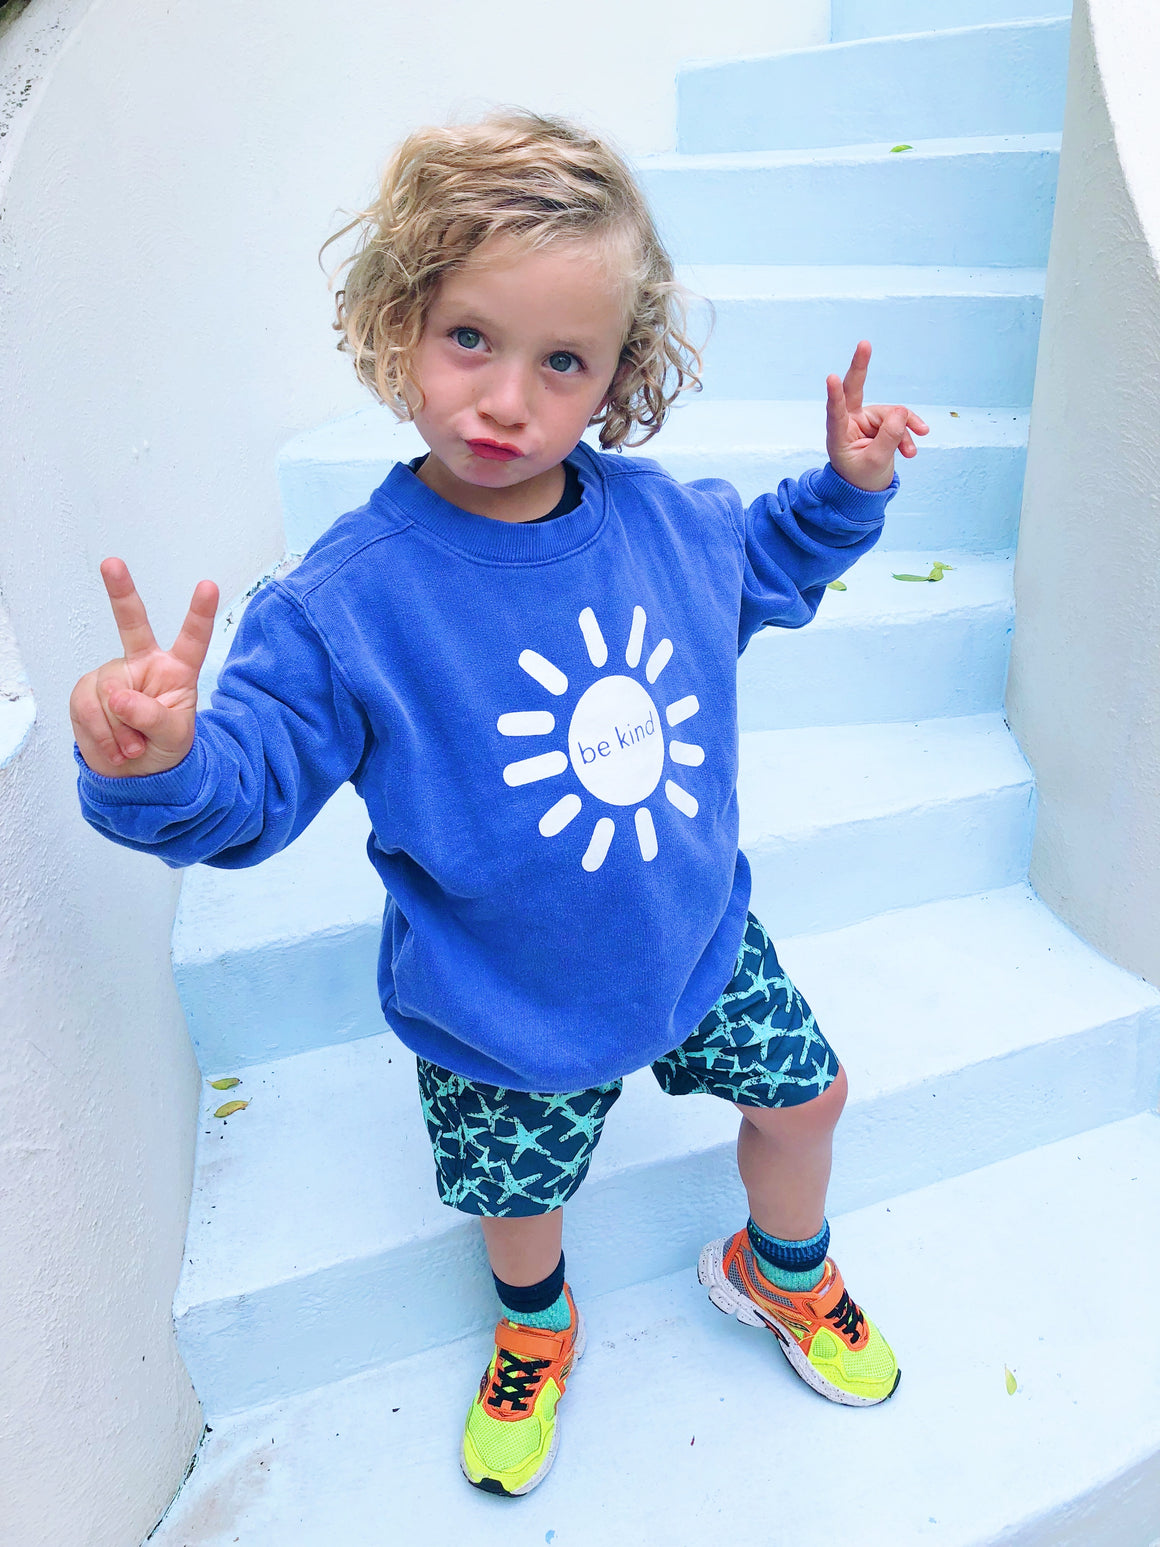 be kind sunshine sweatshirt - blue